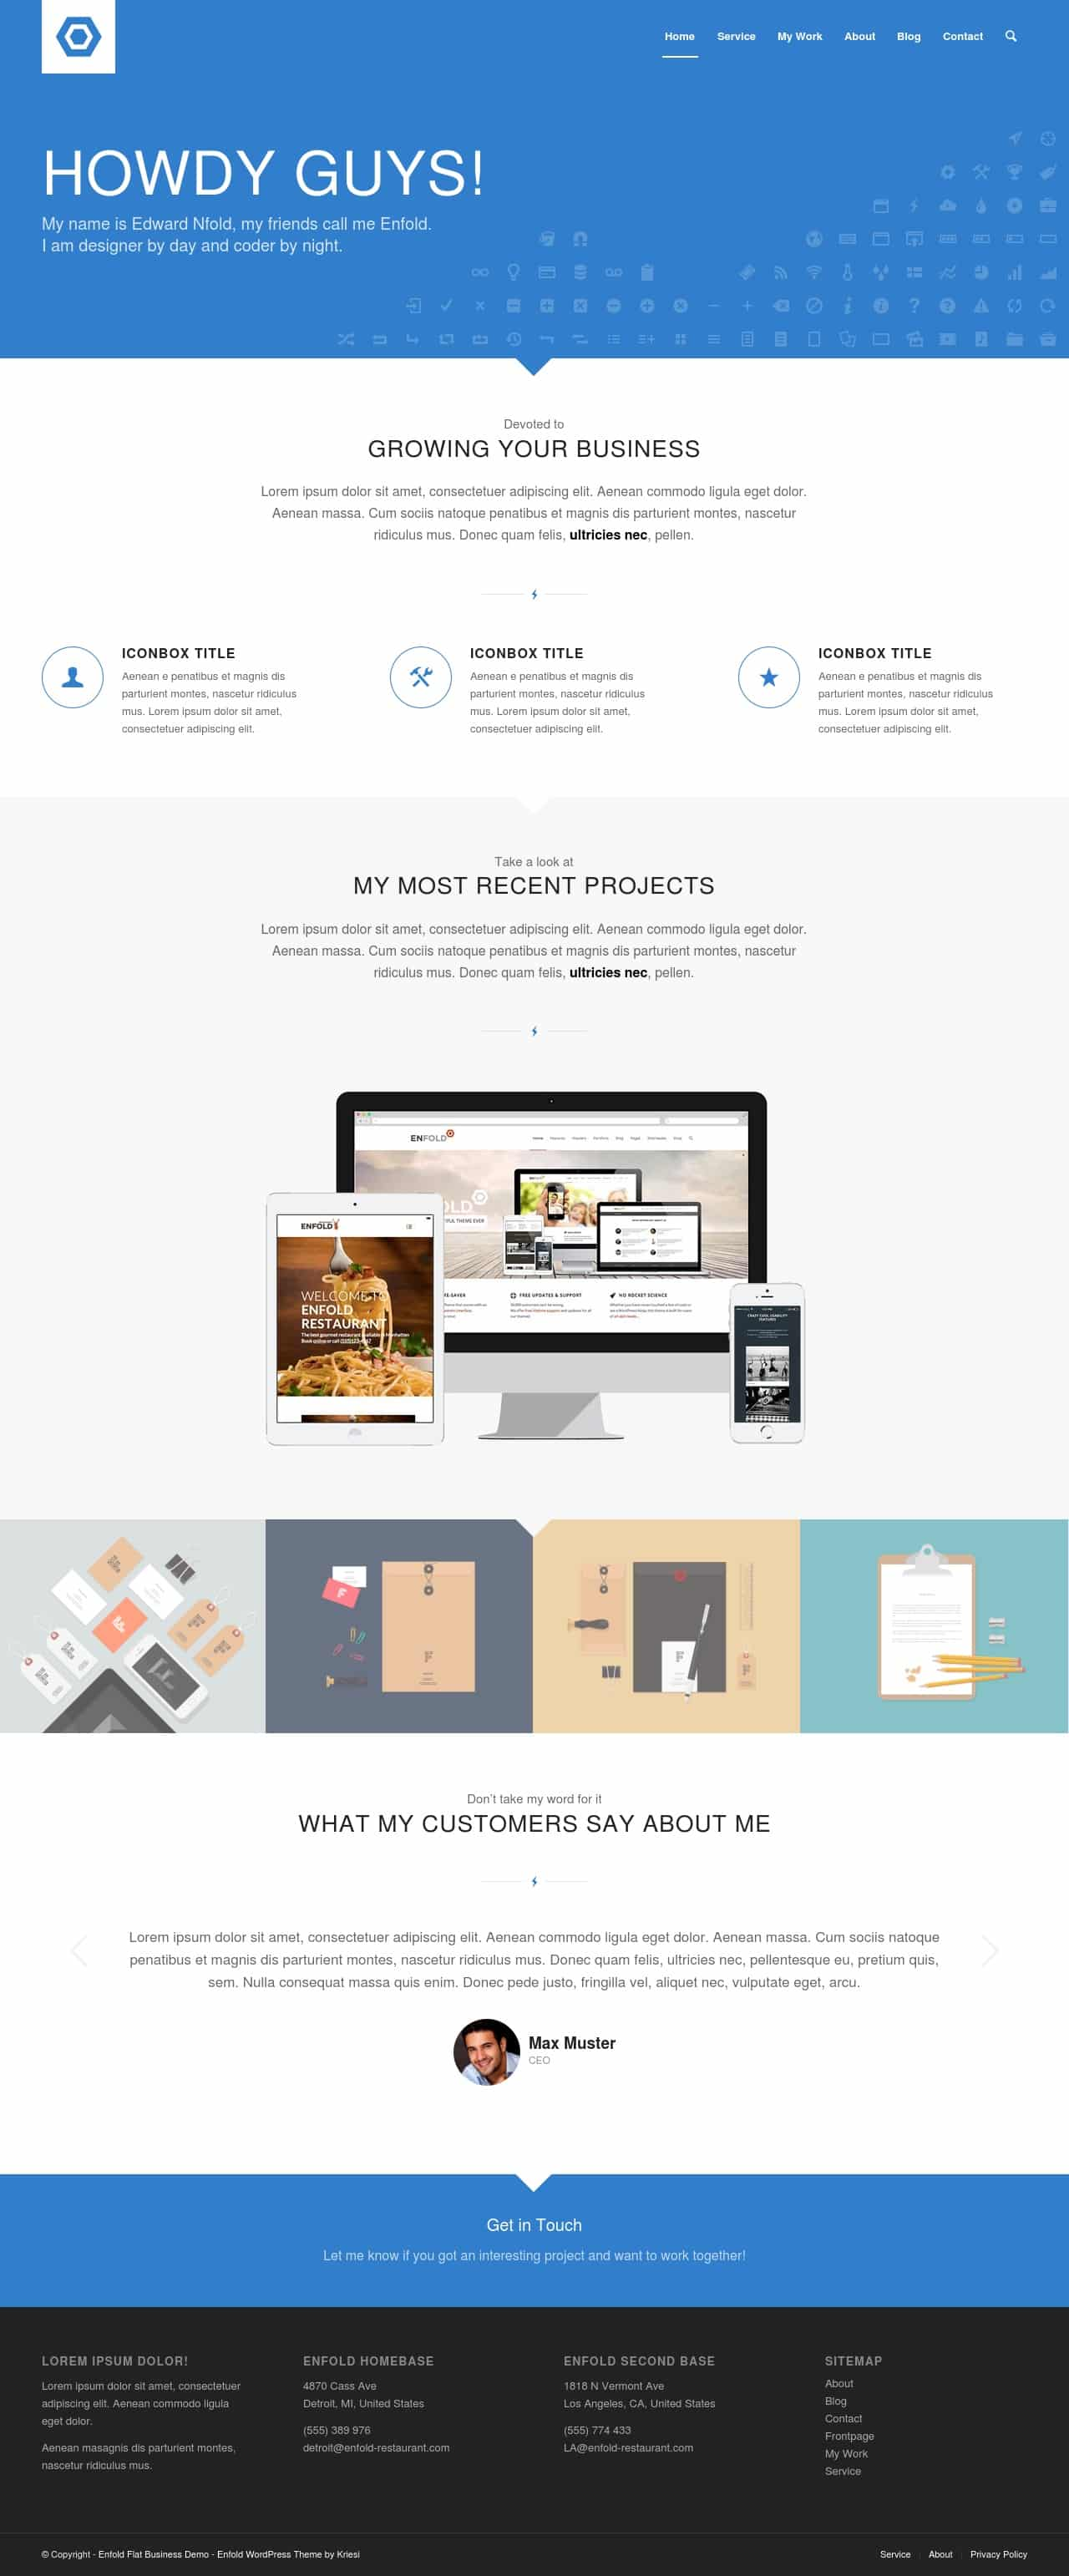 Image word-image.jpeg of How to Install and Setup Your First Enfold Theme Website